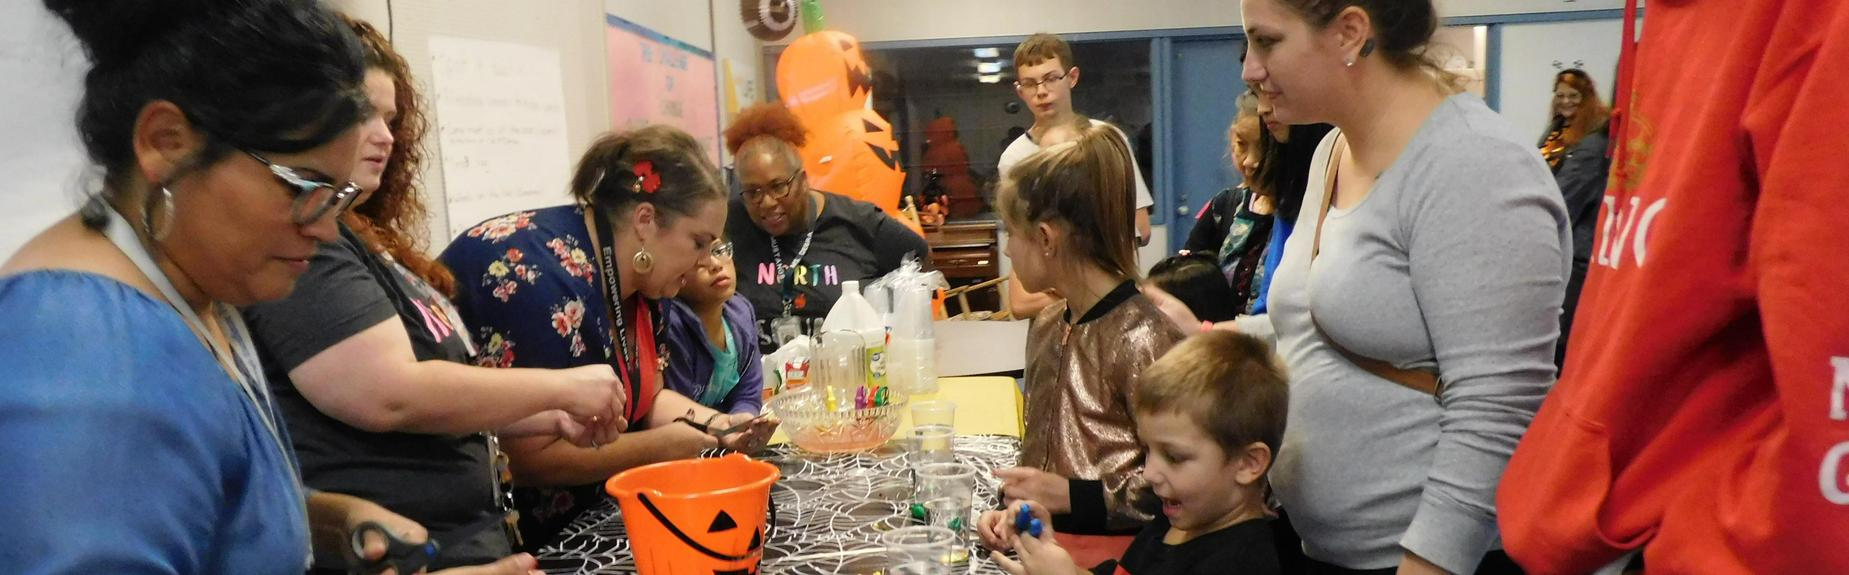 Family Fun Night with STEM (Science, Technology, Engineering, and Math)